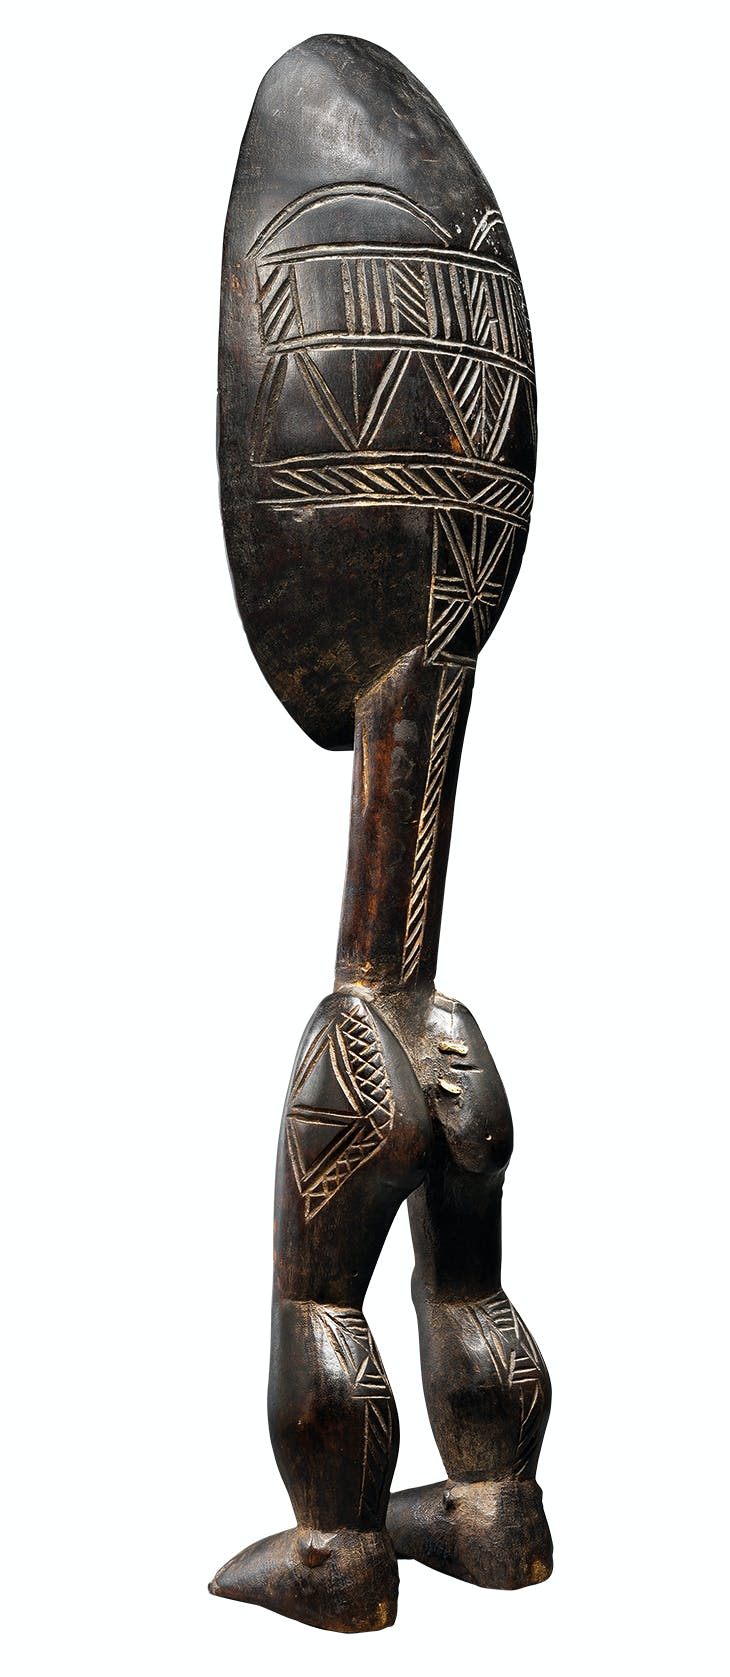 Anthropomorphic spoon (late 19th century), Dan people, Ivory Coast.